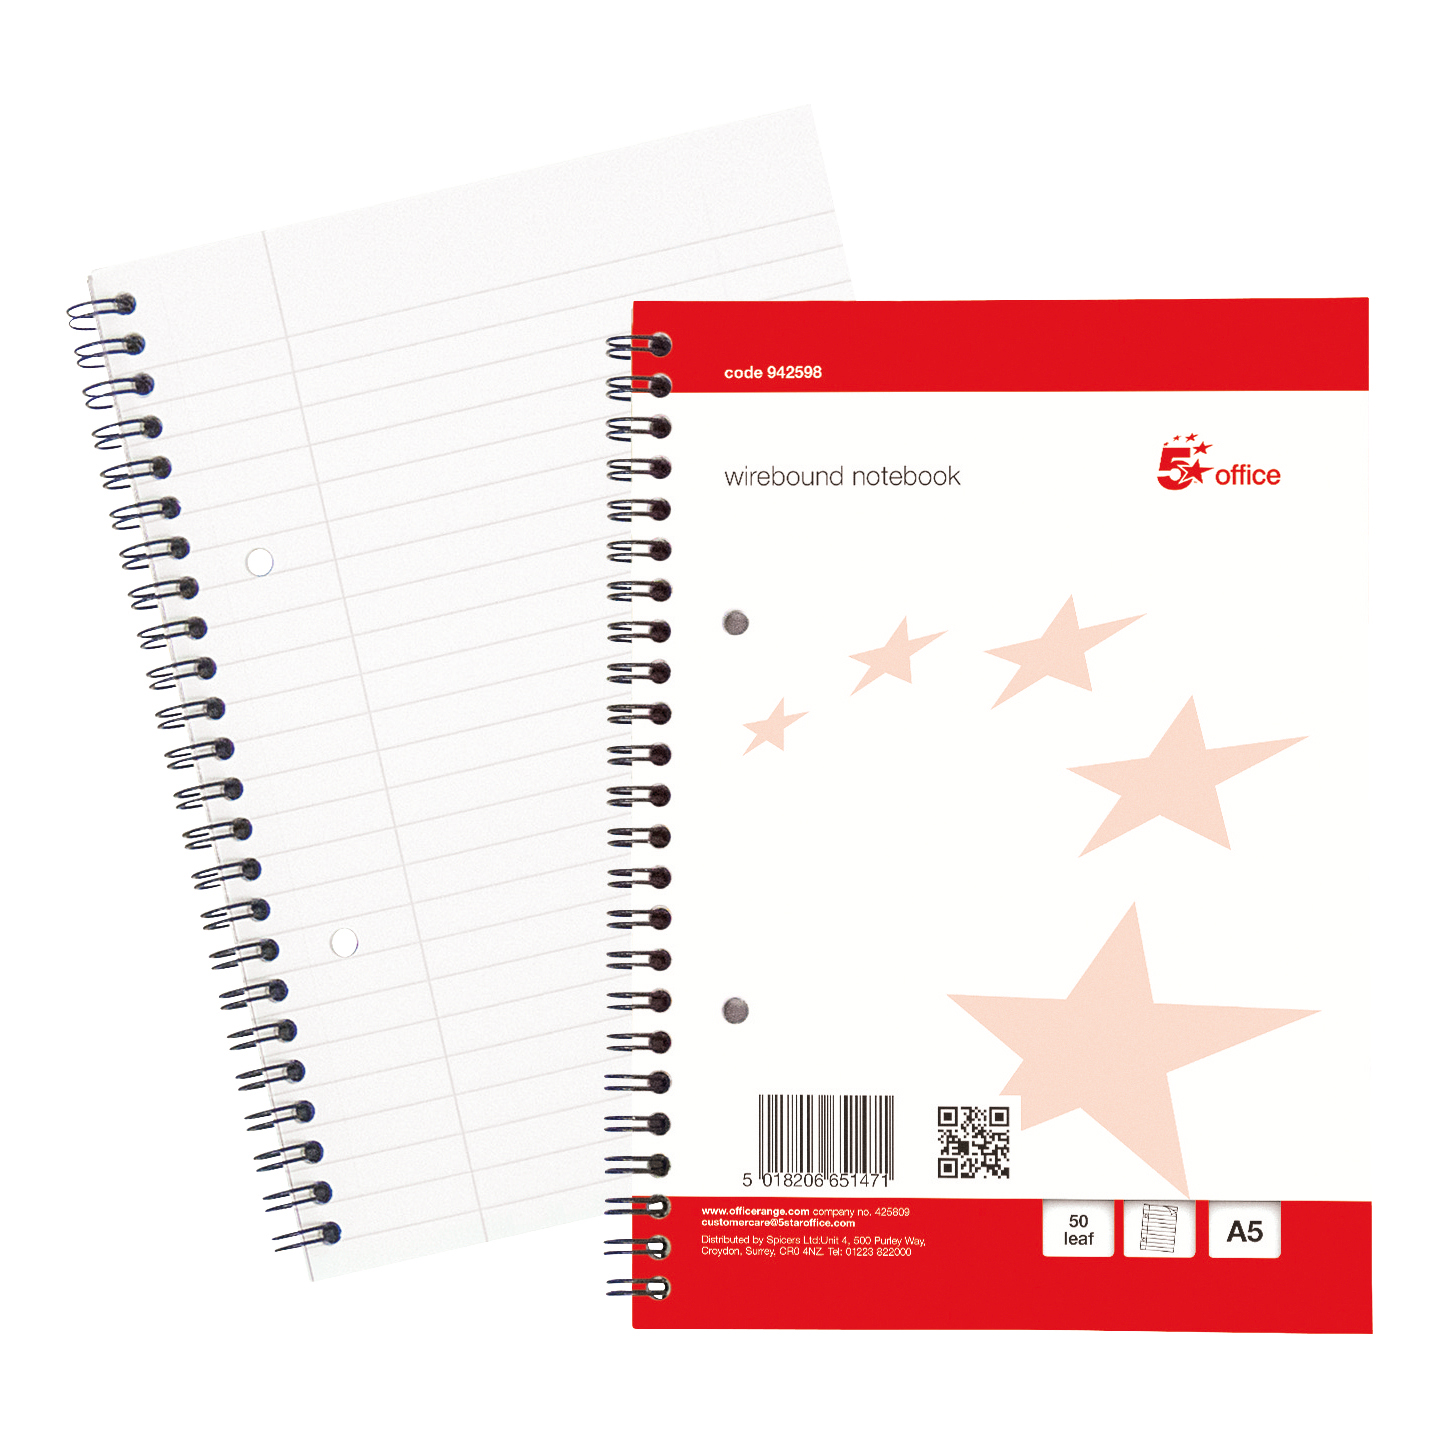 Spiral Note Books 5 Star Office Notebook Wirebound 70gsm Ruled with Margin Perf Punched 2 Holes 100pp A5+ Red Pack 10